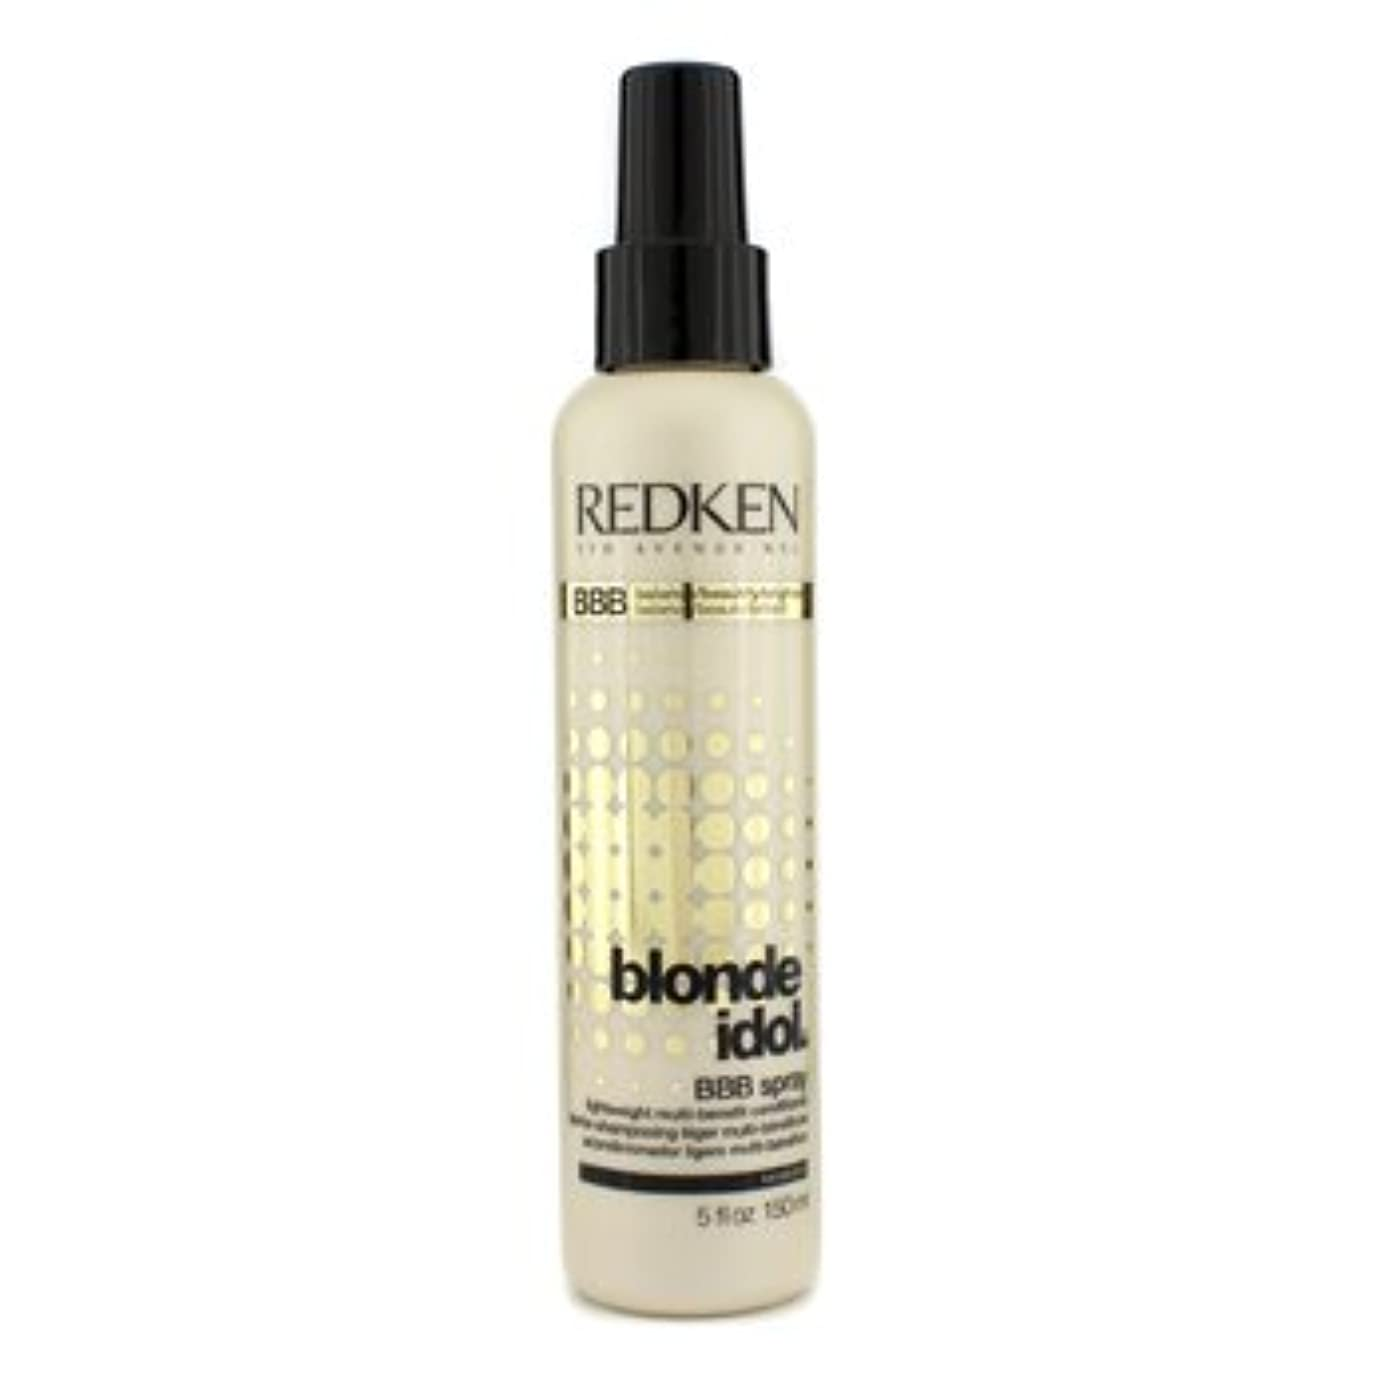 乏しい残り物リム[Redken] Blonde Idol BBB Spray Lightweight Multi-Benefit Conditioner (For Beautiful Blonde Hair) 150ml/5oz